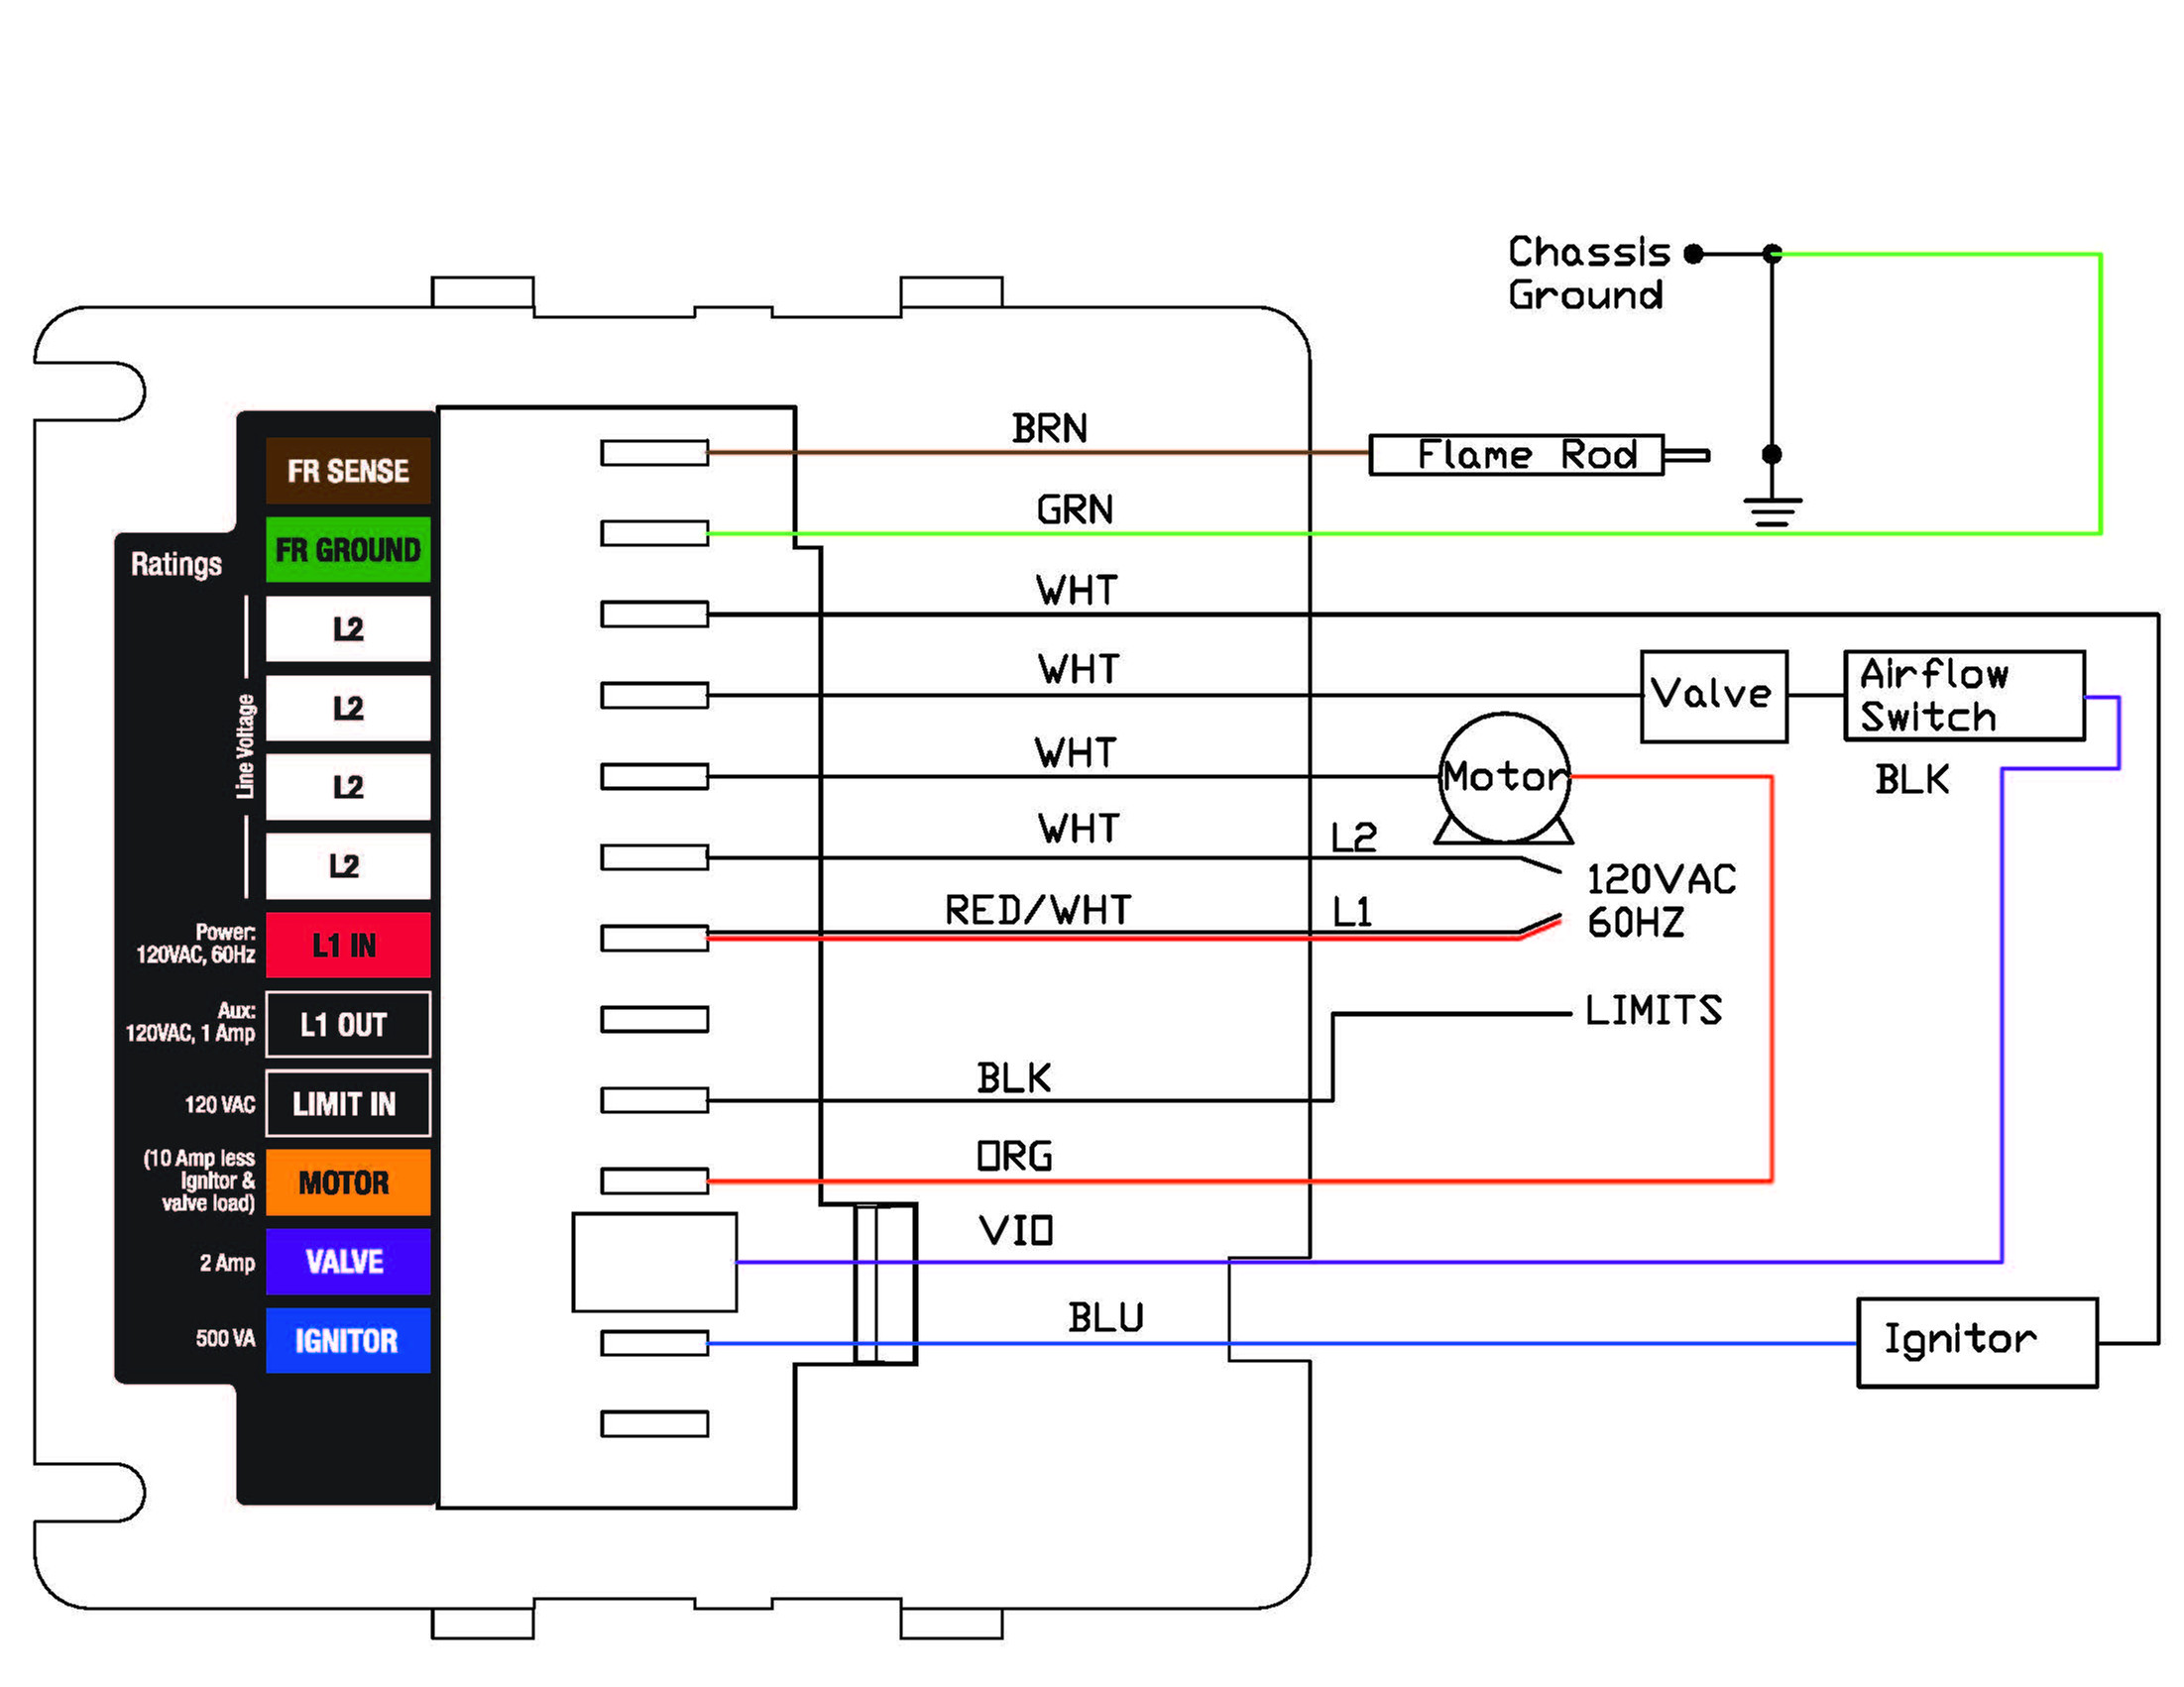 DIAGRAM] Power Flame Burner Wiring Diagram FULL Version HD Quality Wiring  Diagram - DIAGRAMSYS.HOMMEVETEMENTS.FRdiagramsys.hommevetements.fr